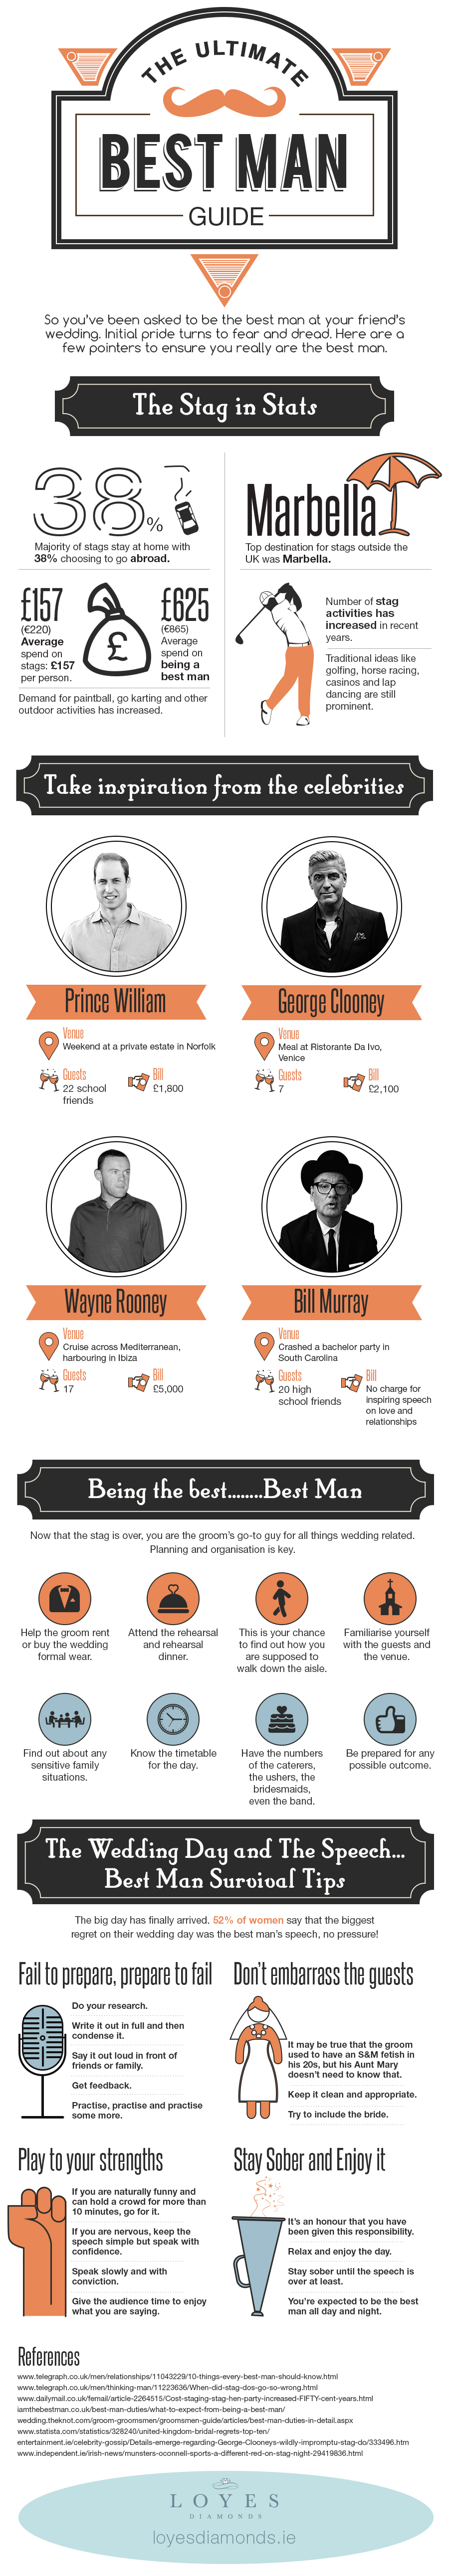 Best Man Infographic